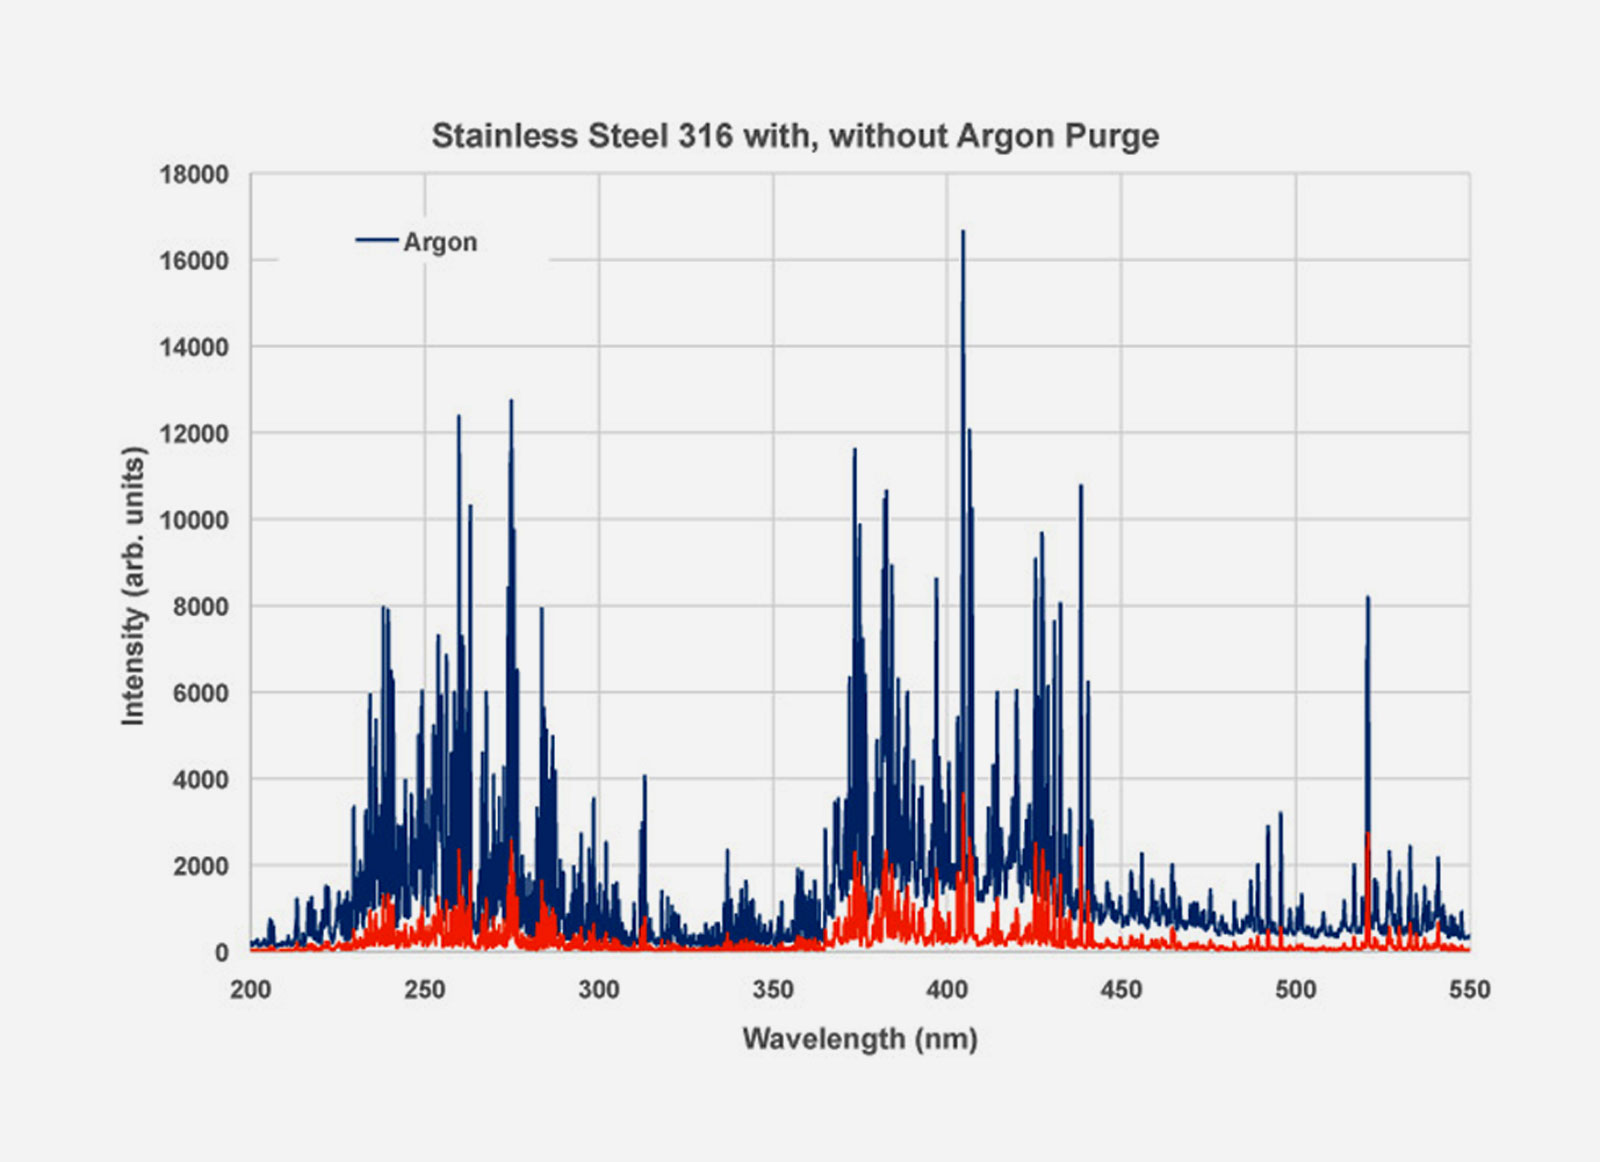 Stainless Steel 316, with and without Argon Purge